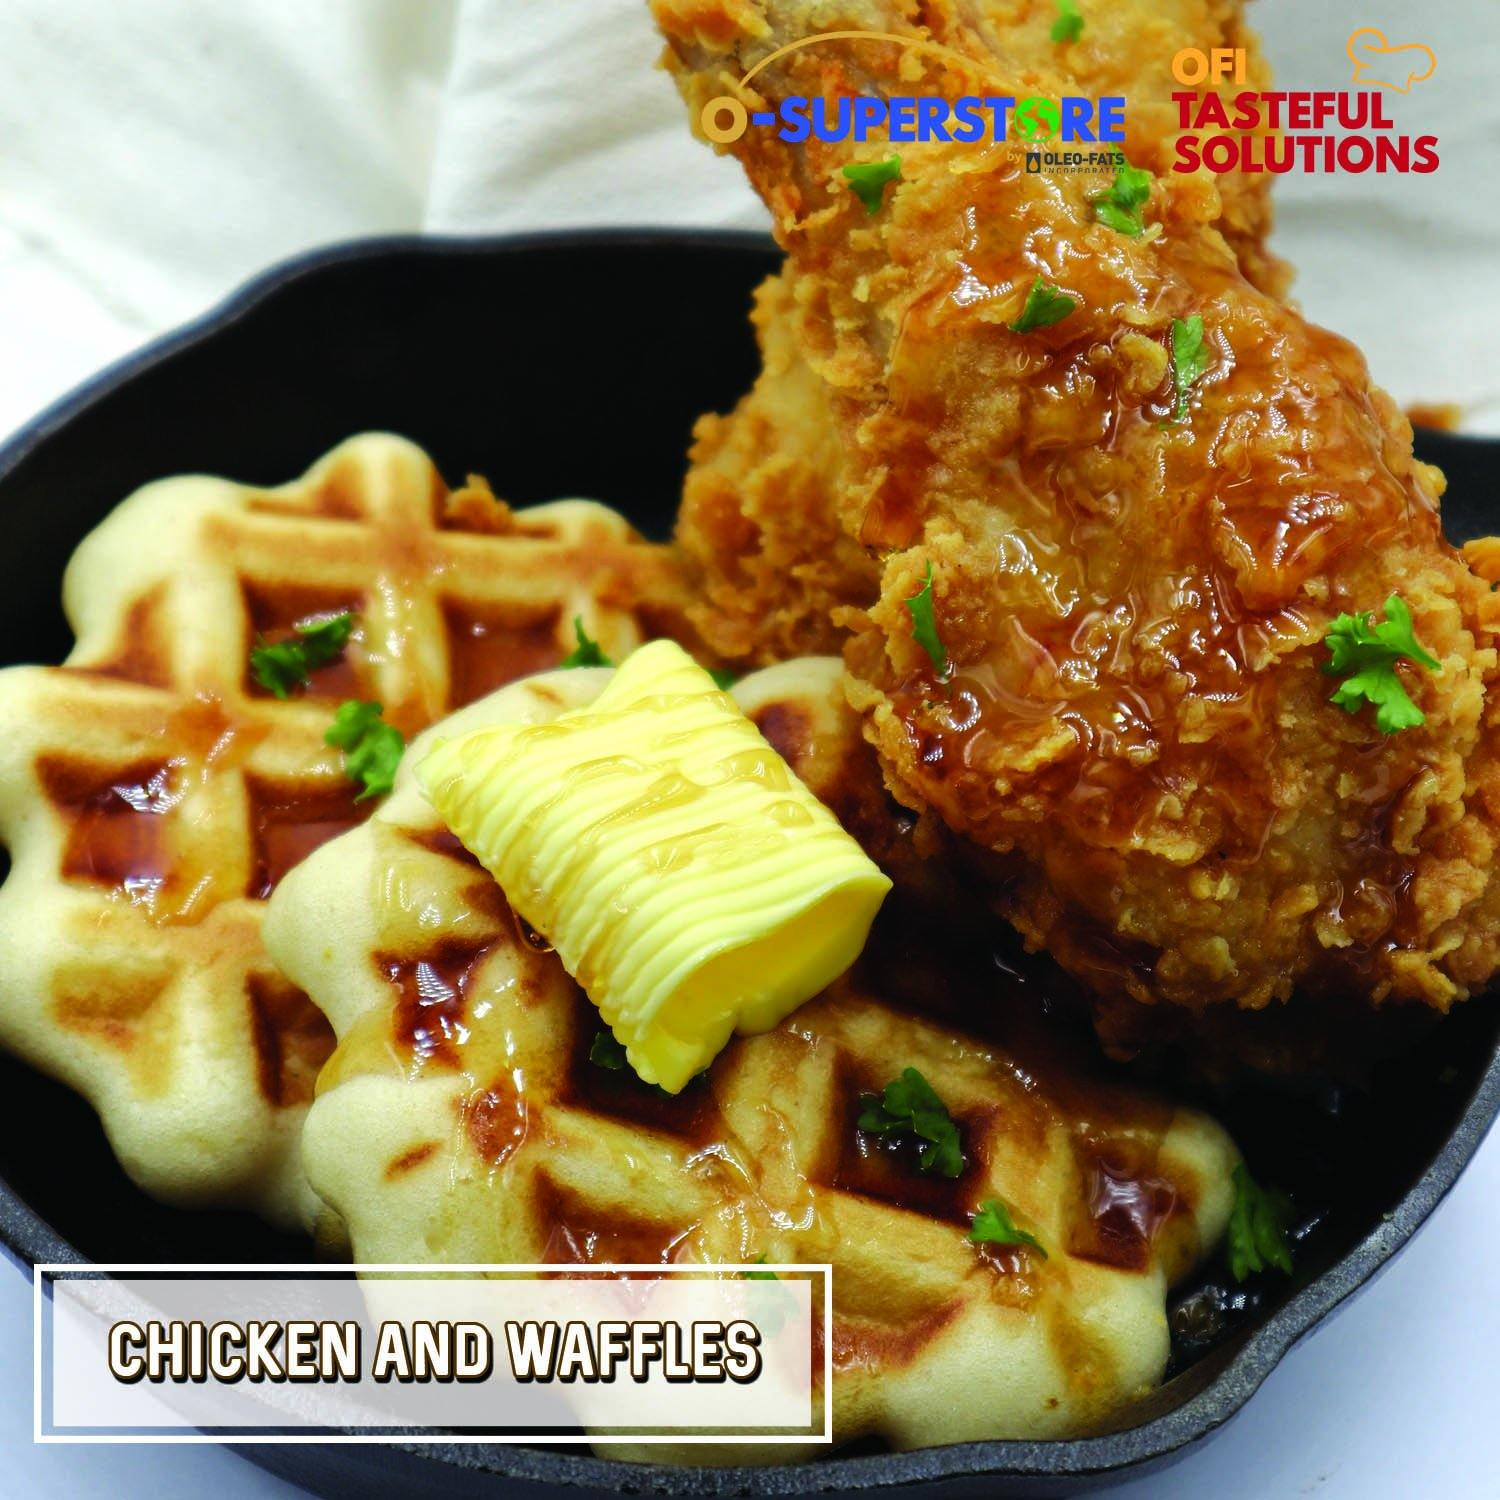 Chicken and Waffles - O-SUPERSTORE